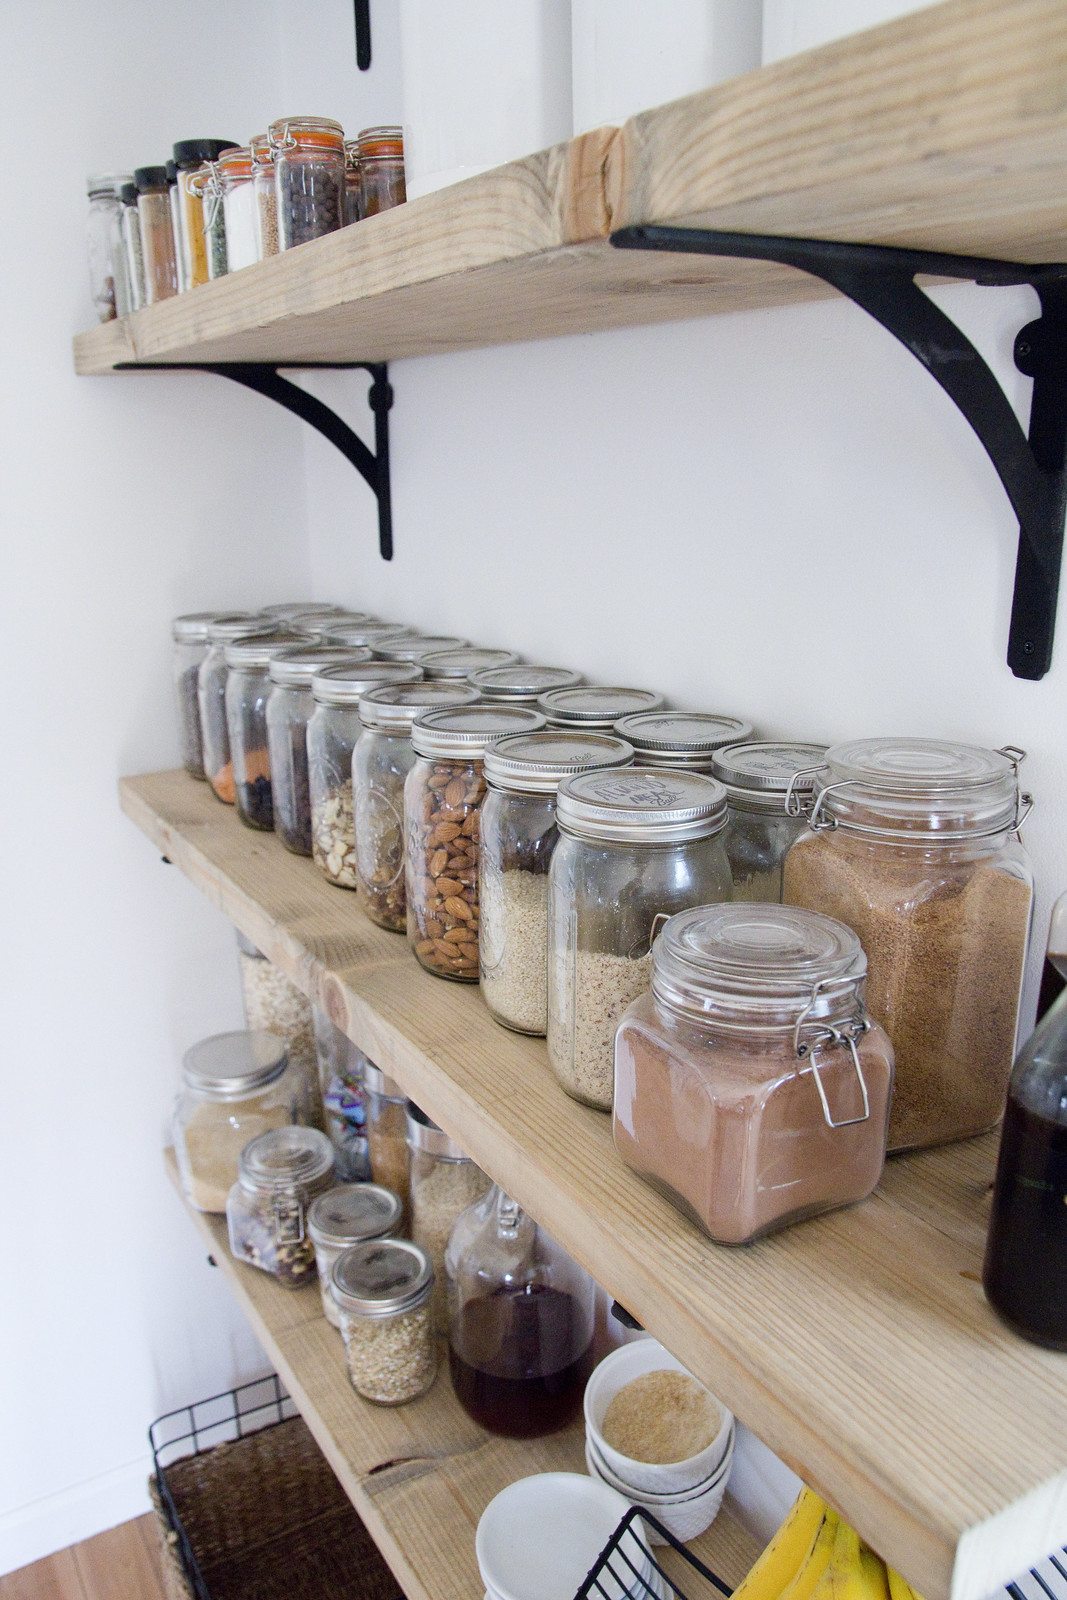 Pantry Shelves 8 Tips For Creating Successful Open Shelving And A Pantry Jen